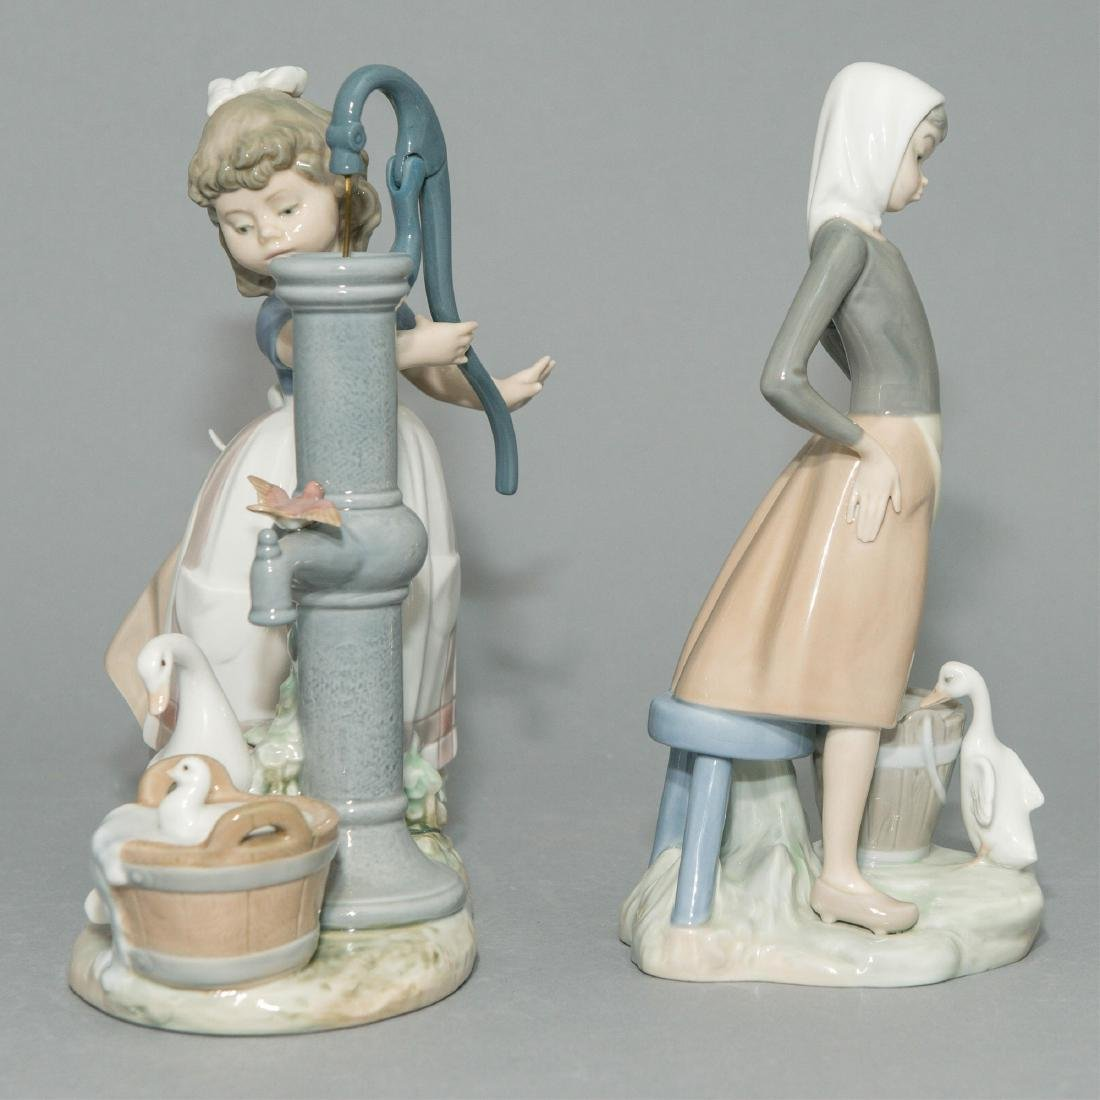 LLADRO GIRL WITH MILK PAIL AND SUMMER FIGURINES - 4